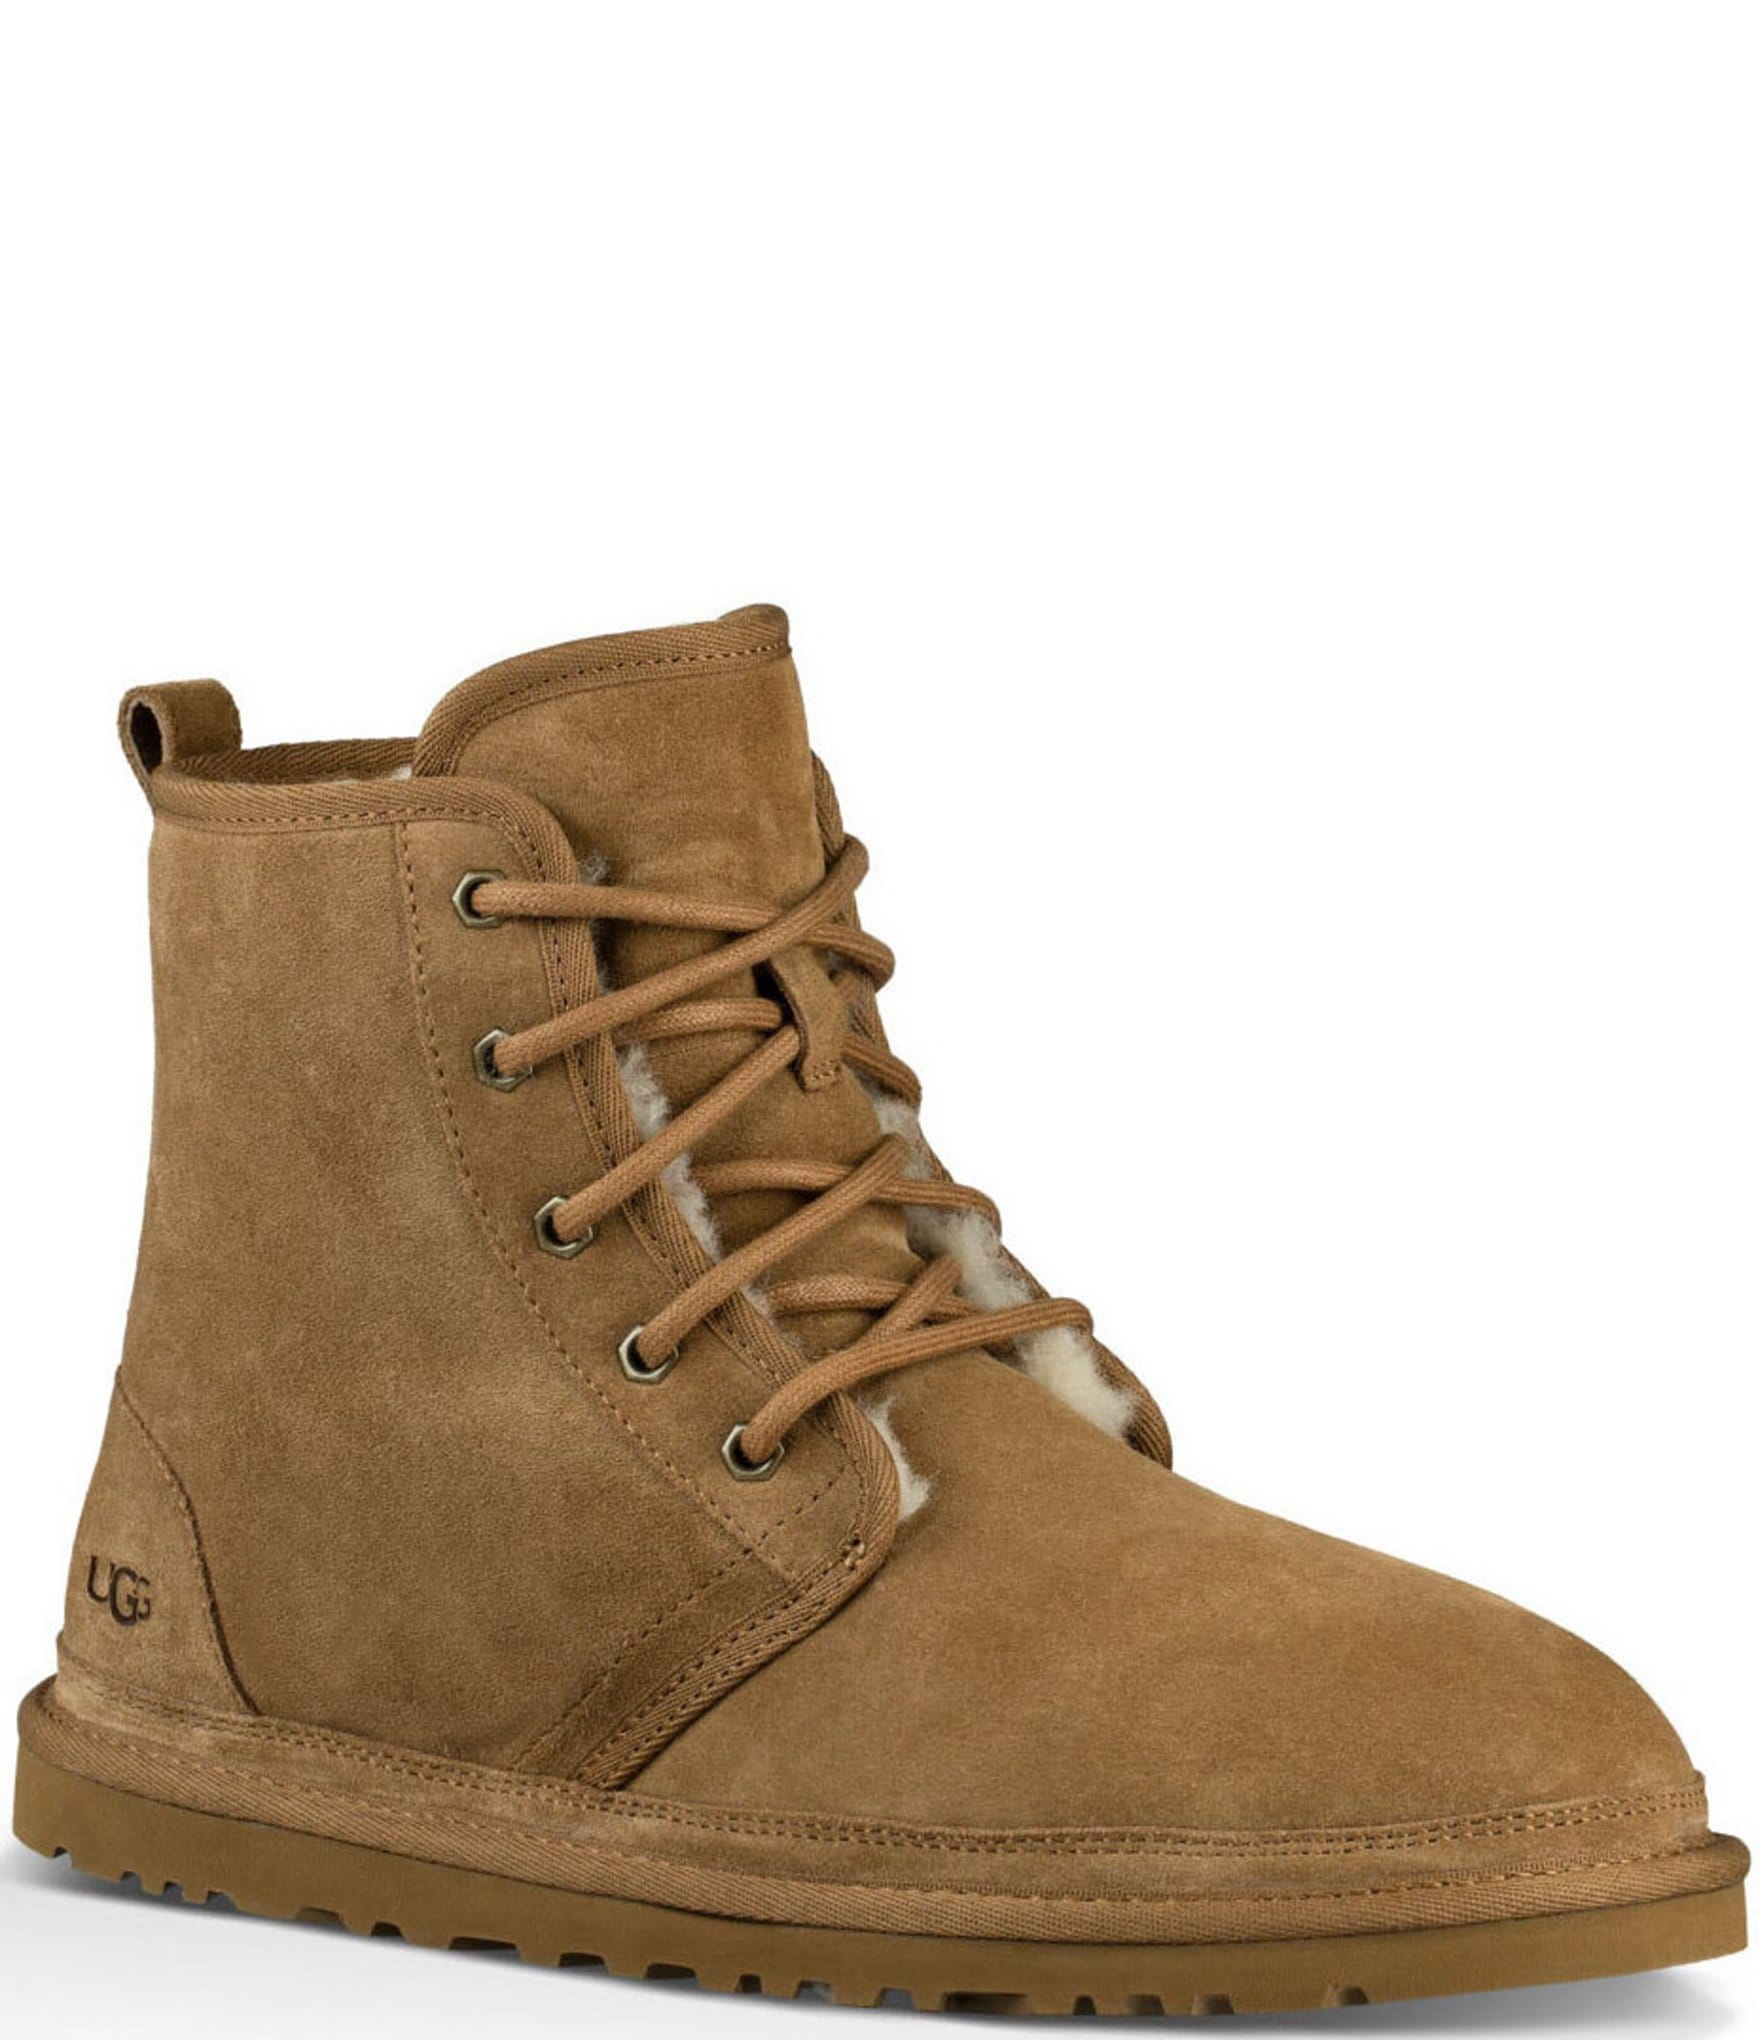 Boots Solid Mens Shoes Austin Wedges Montana Beige 36